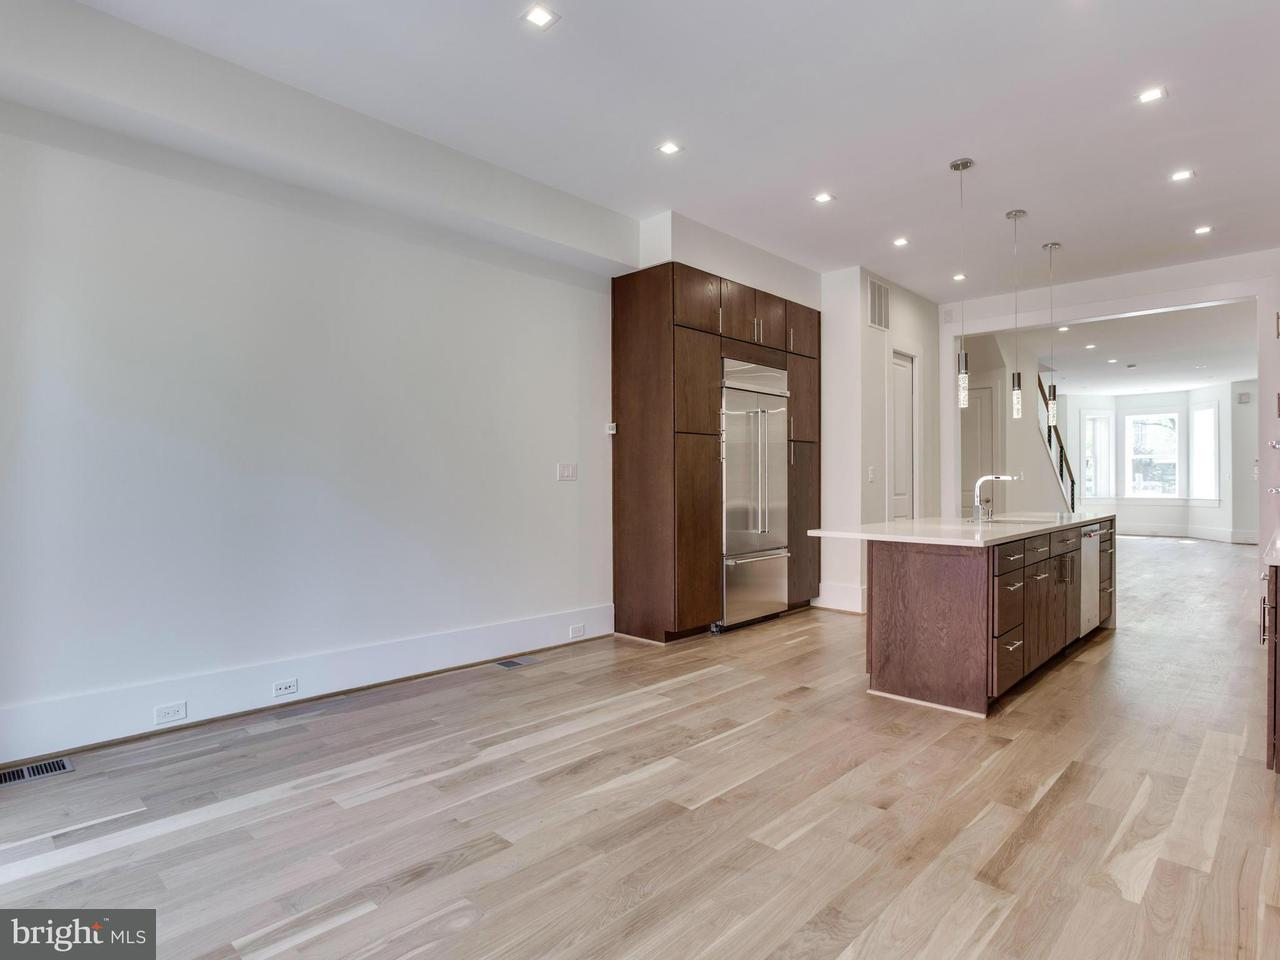 Additional photo for property listing at 720 CAPITOL ST NE 720 CAPITOL ST NE Washington, District Of Columbia 20003 United States